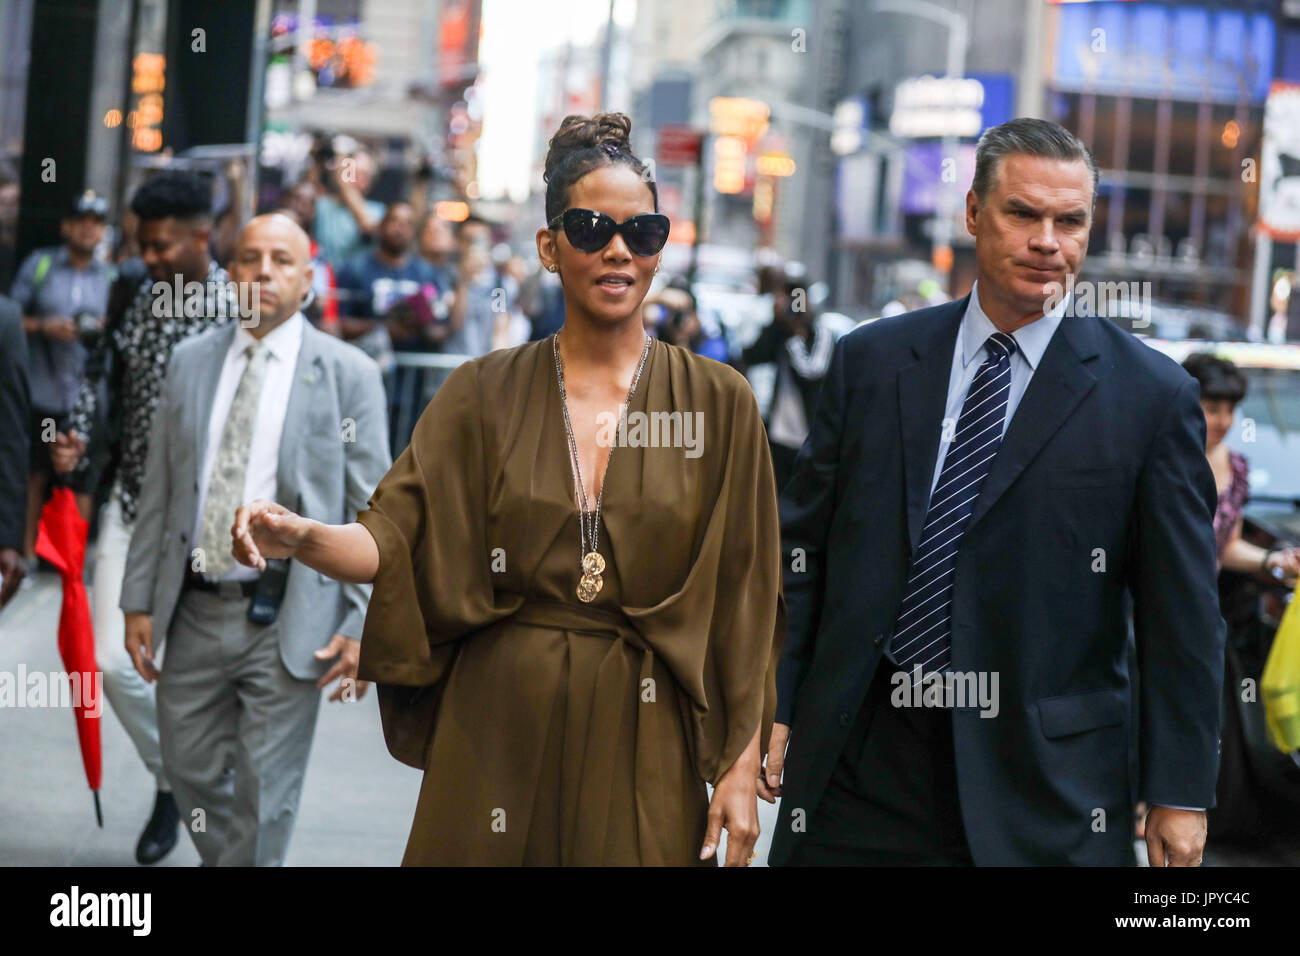 New York, USA. 3rd Aug, 2017. American actress Halle Berry is seen arriving on a television program in the Times - Stock Image